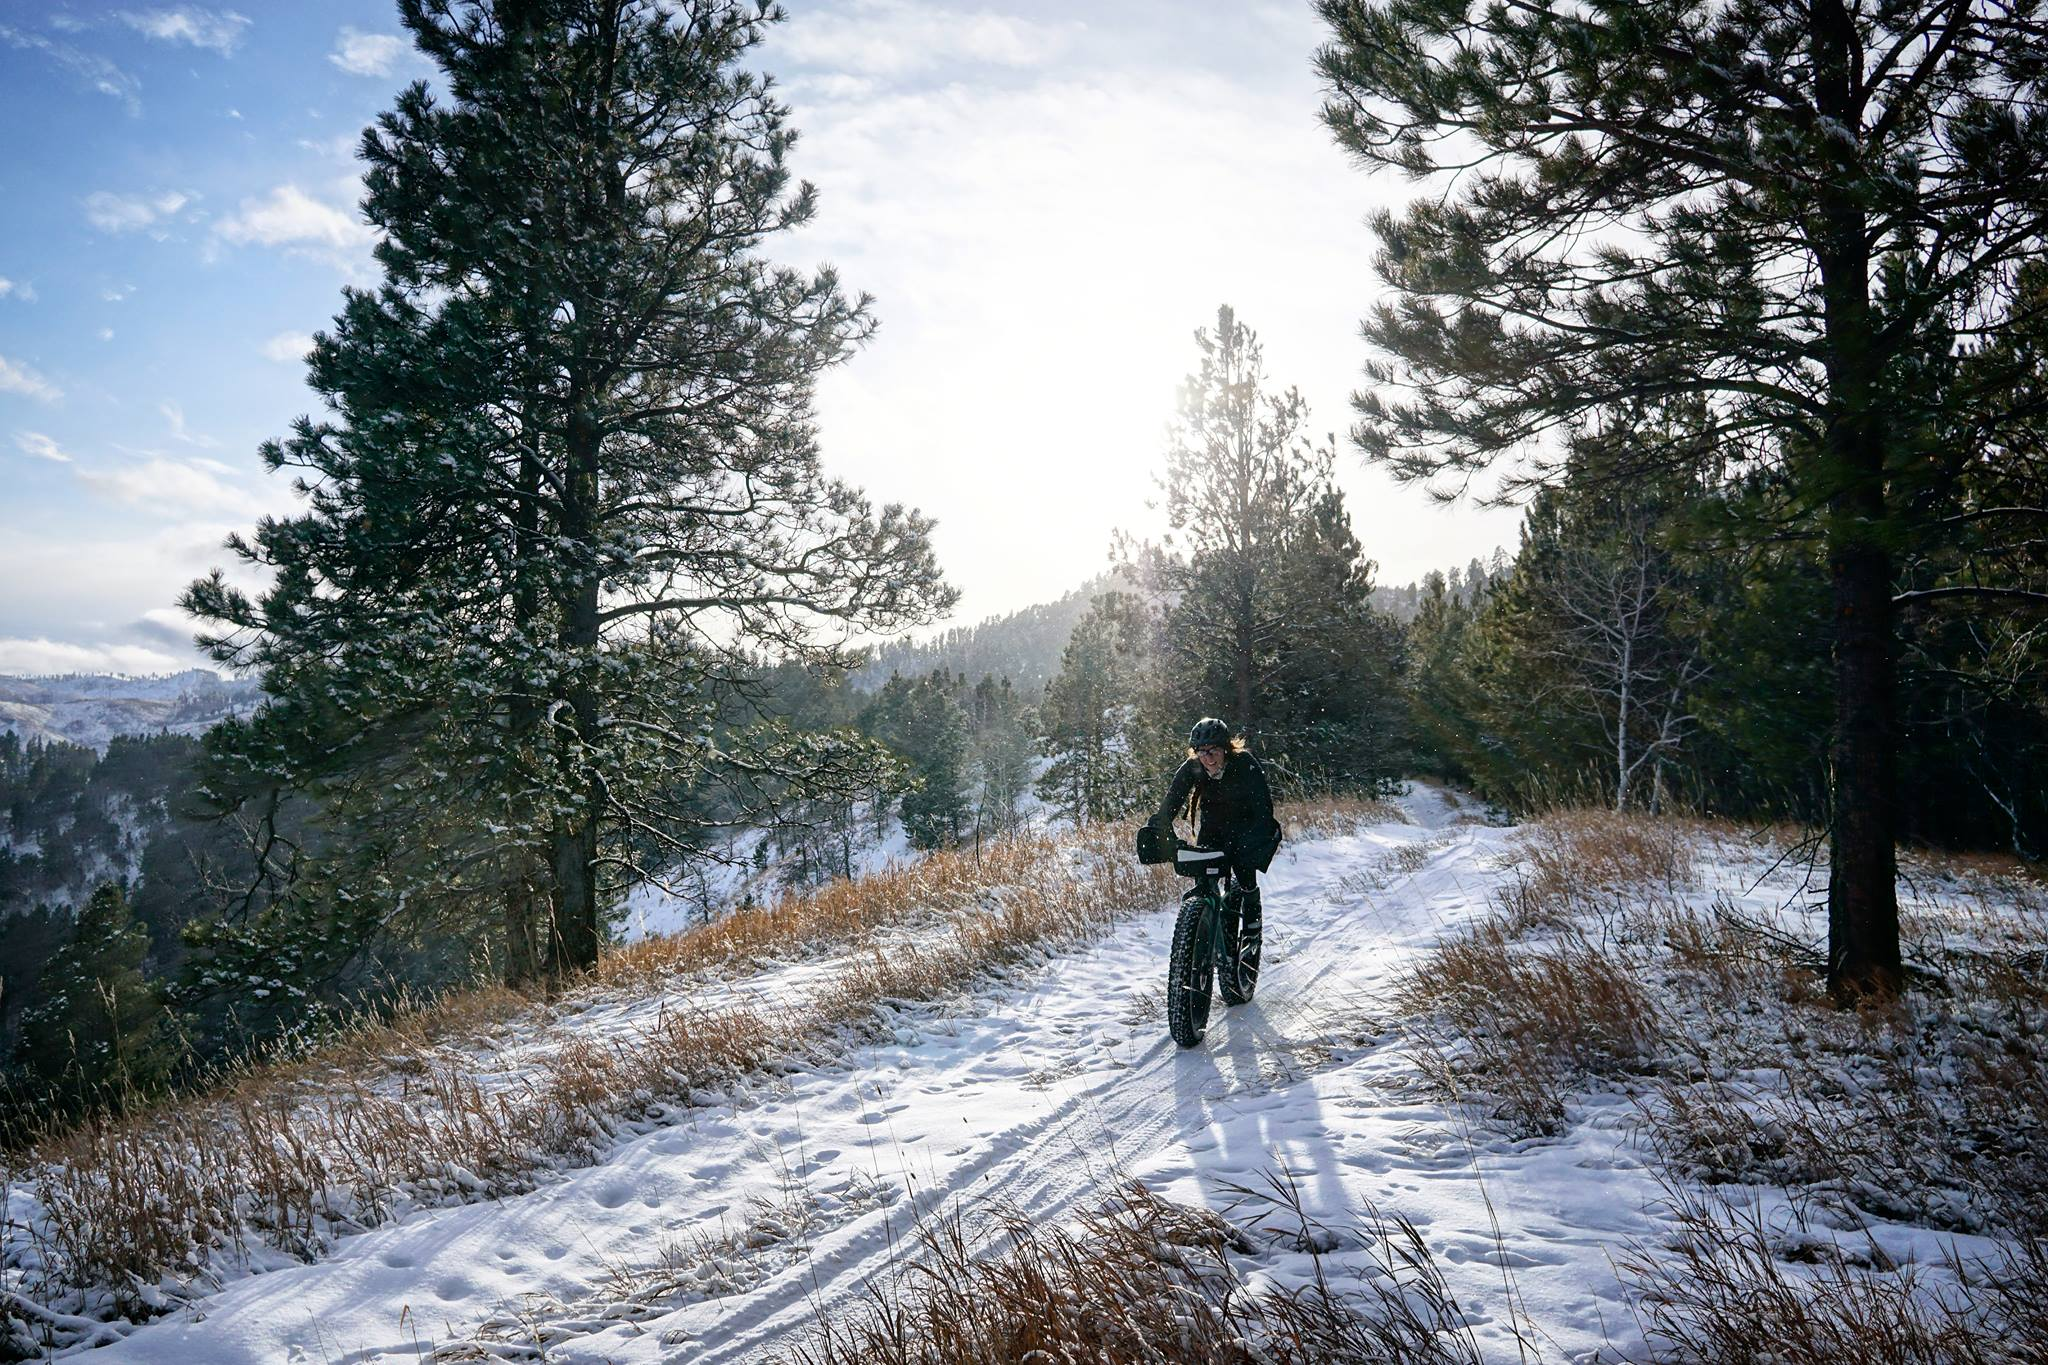 My first time riding the course of the Winter's Fat Classic race in Deadwood, South Dakota. This remains one of my all-time favorite rides on a Fatbike, and I almost didn't go due to weather: it was a 3 degree day in the Black Hills. (Photo by  Zach Stone , December 2017)